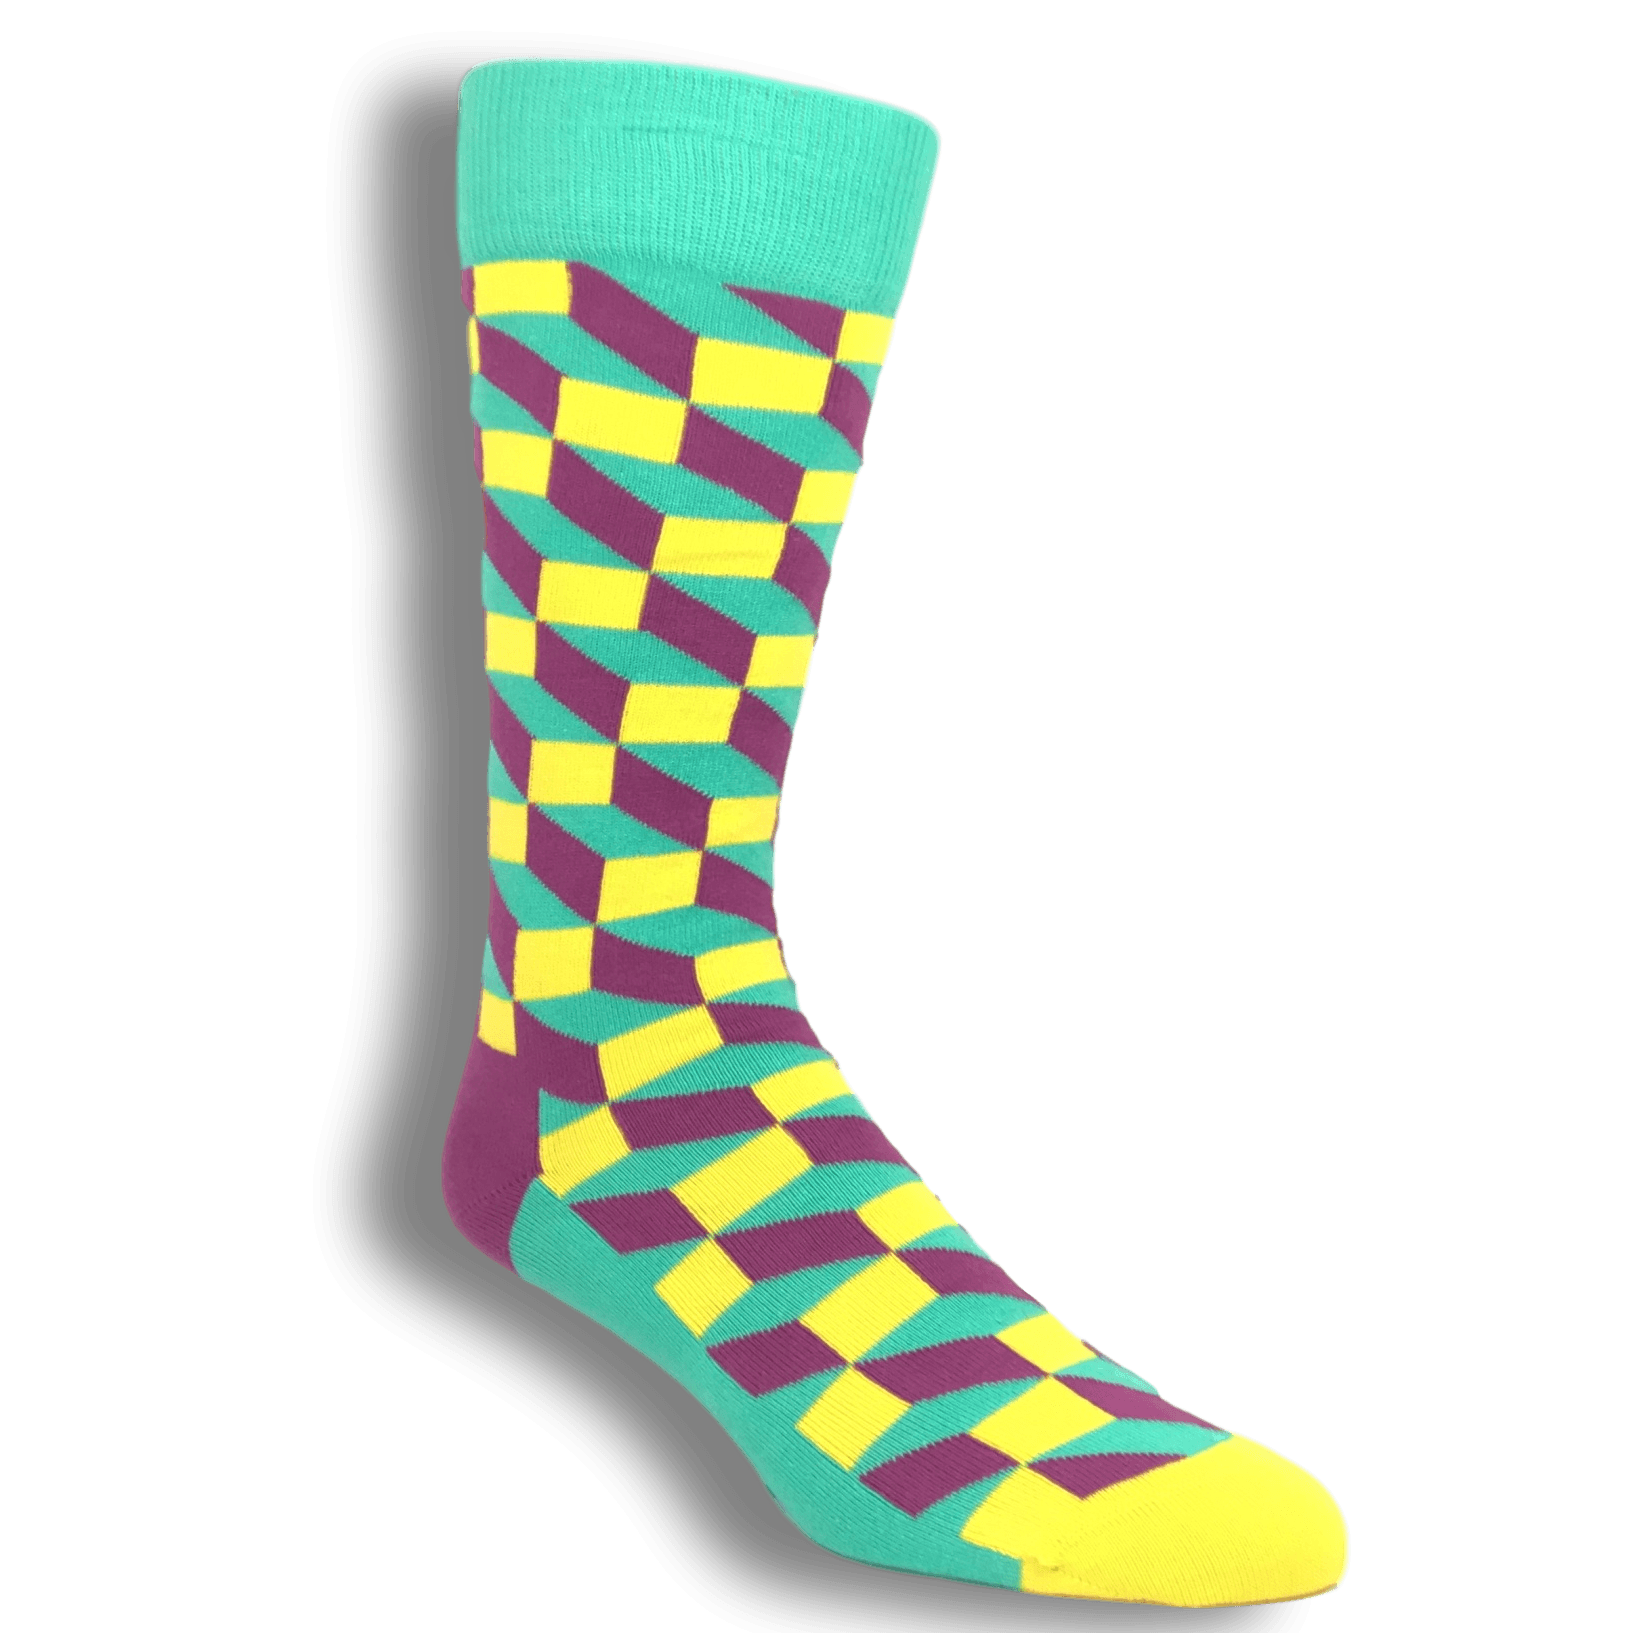 Shapes and Patterns Socks